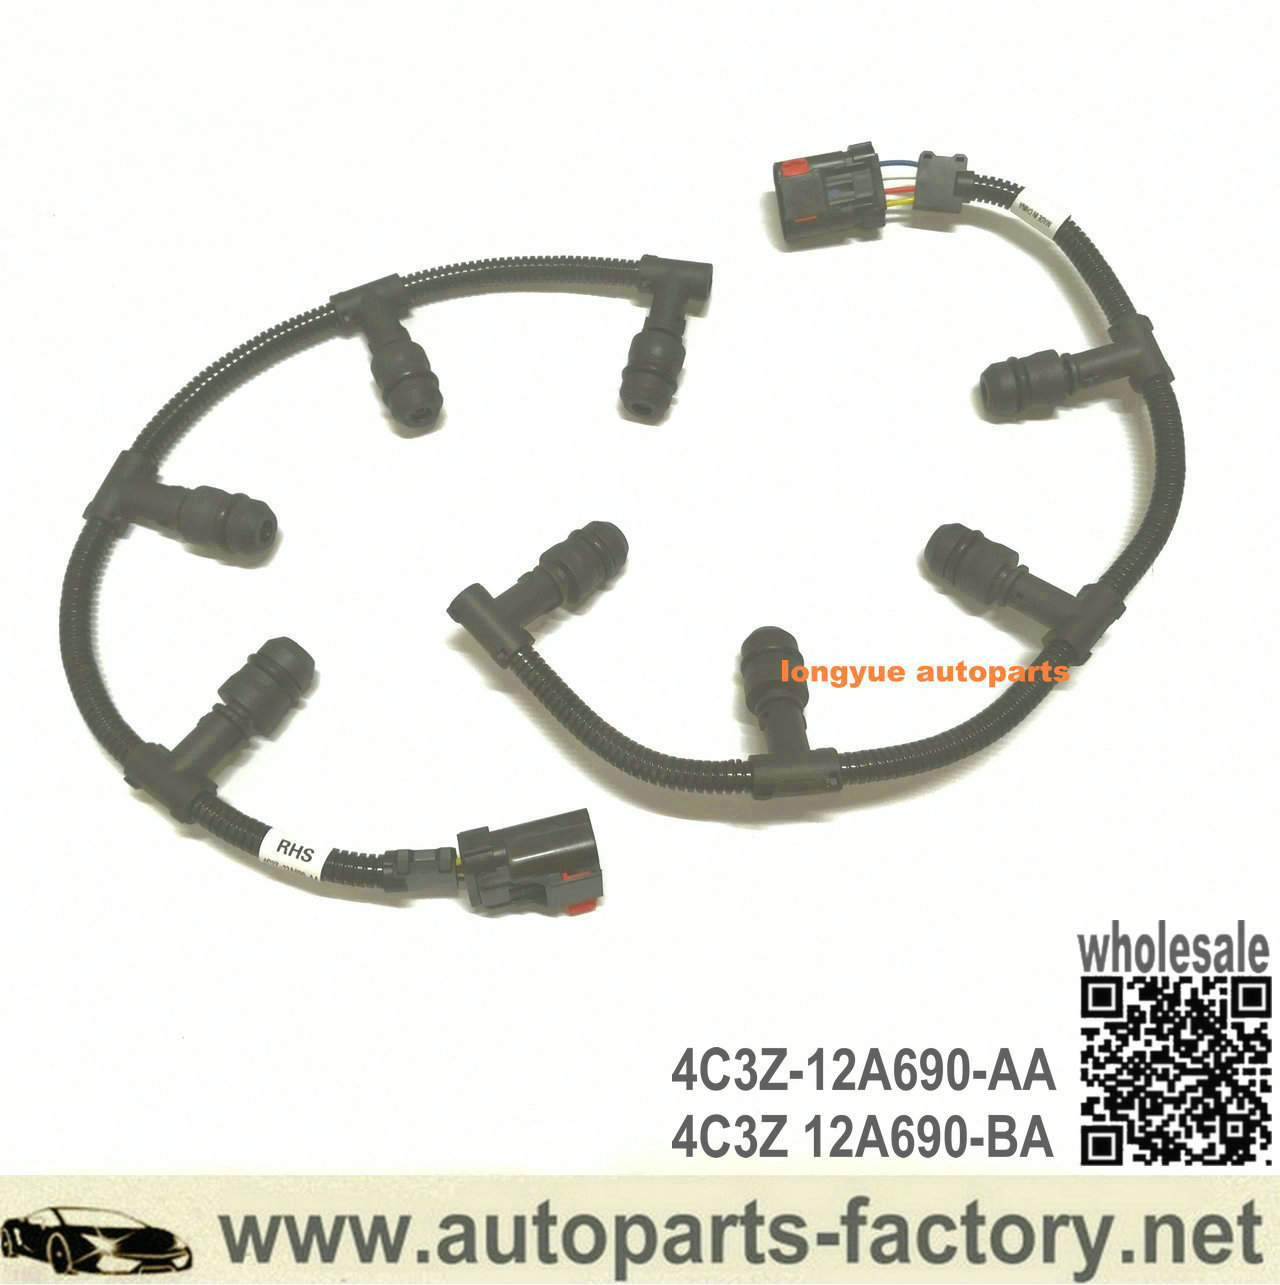 08-10 6.4L Powerstroke Diesel OEM Ford R//H Right Fuel Injector Wiring Harness